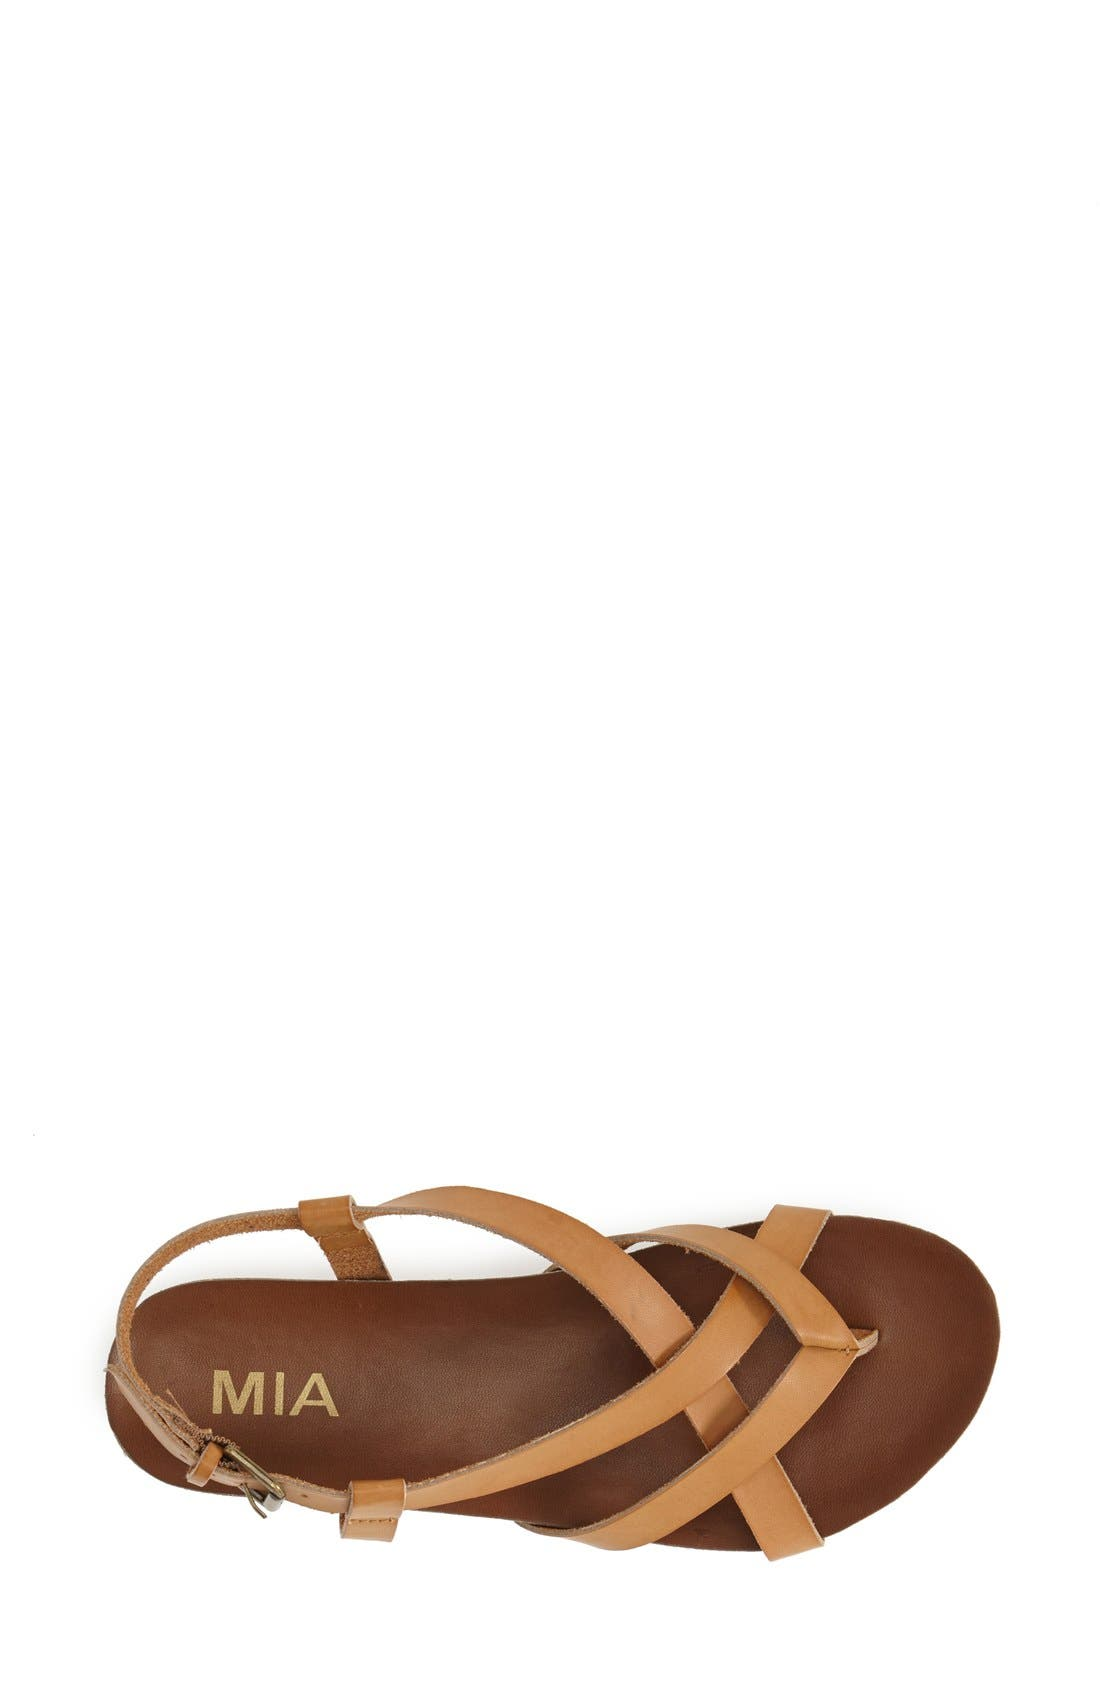 Alternate Image 3  - MIA 'Wildcard' Sandal (Women)